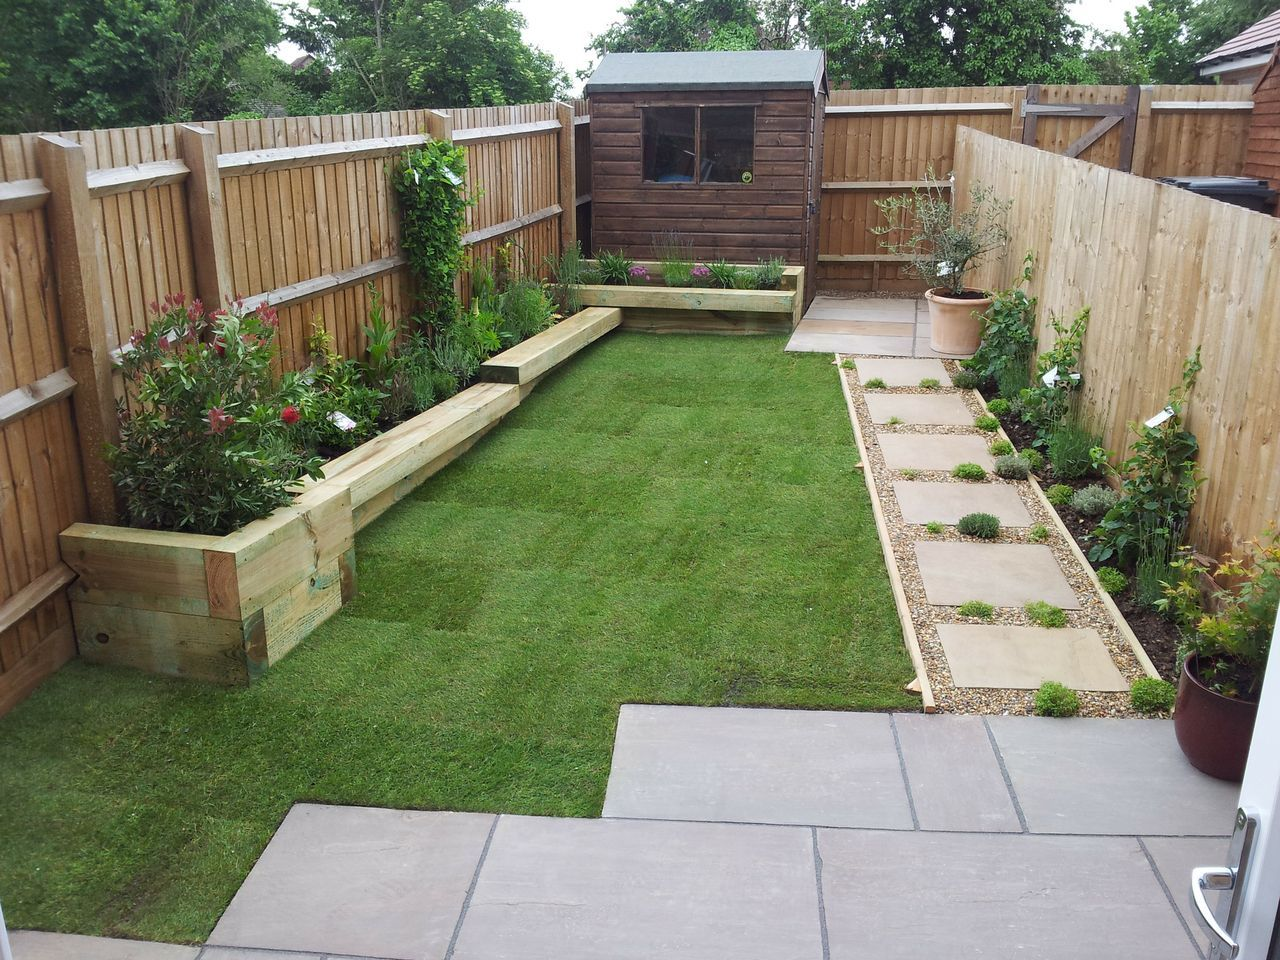 Small garden with raised beds / sleeper benches Small